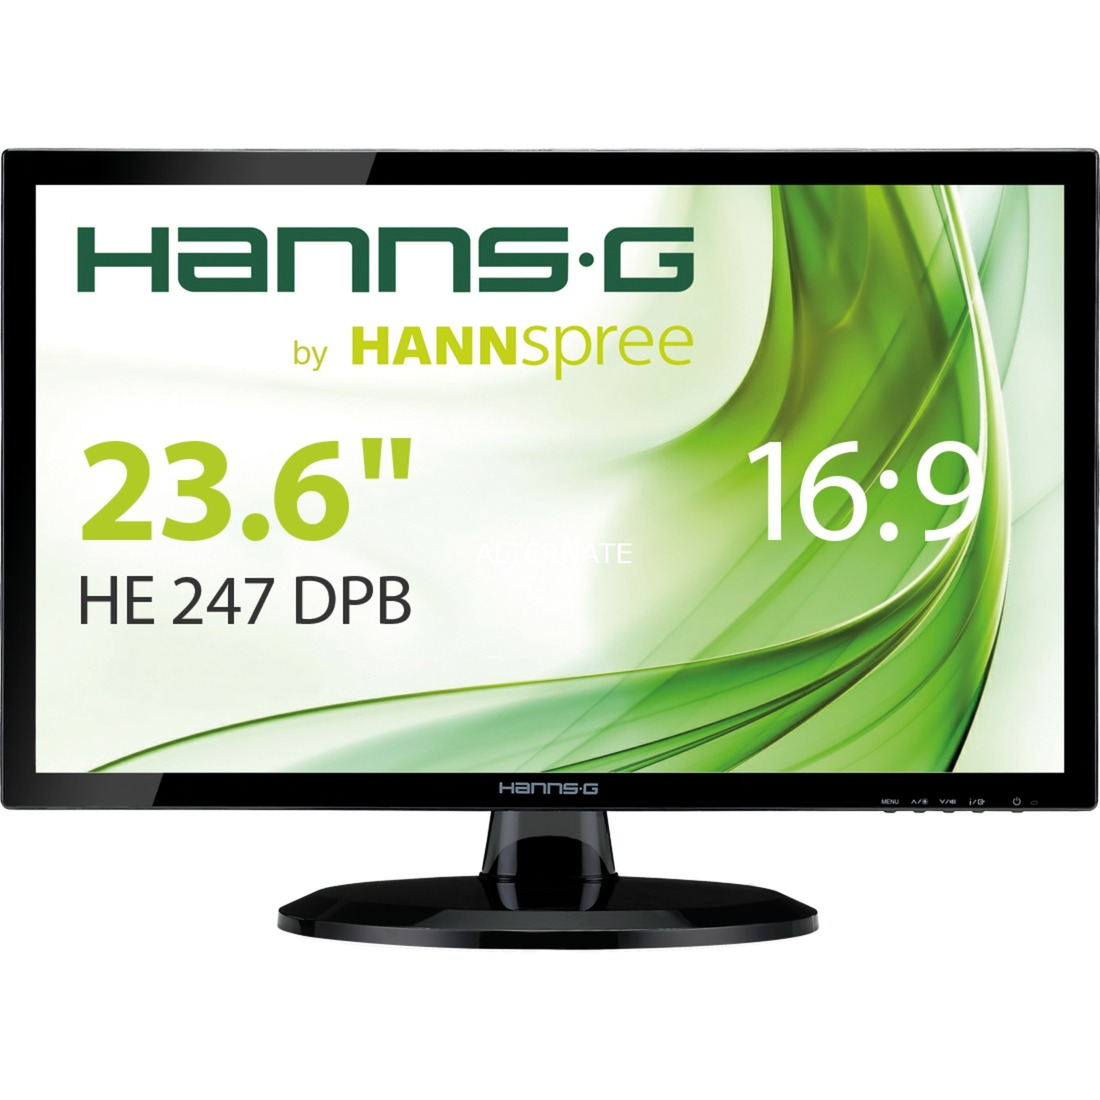 "Hanns.G HE247DPB 23.6"" Full HD Negro pantalla para PC LED display, Monitor LED"